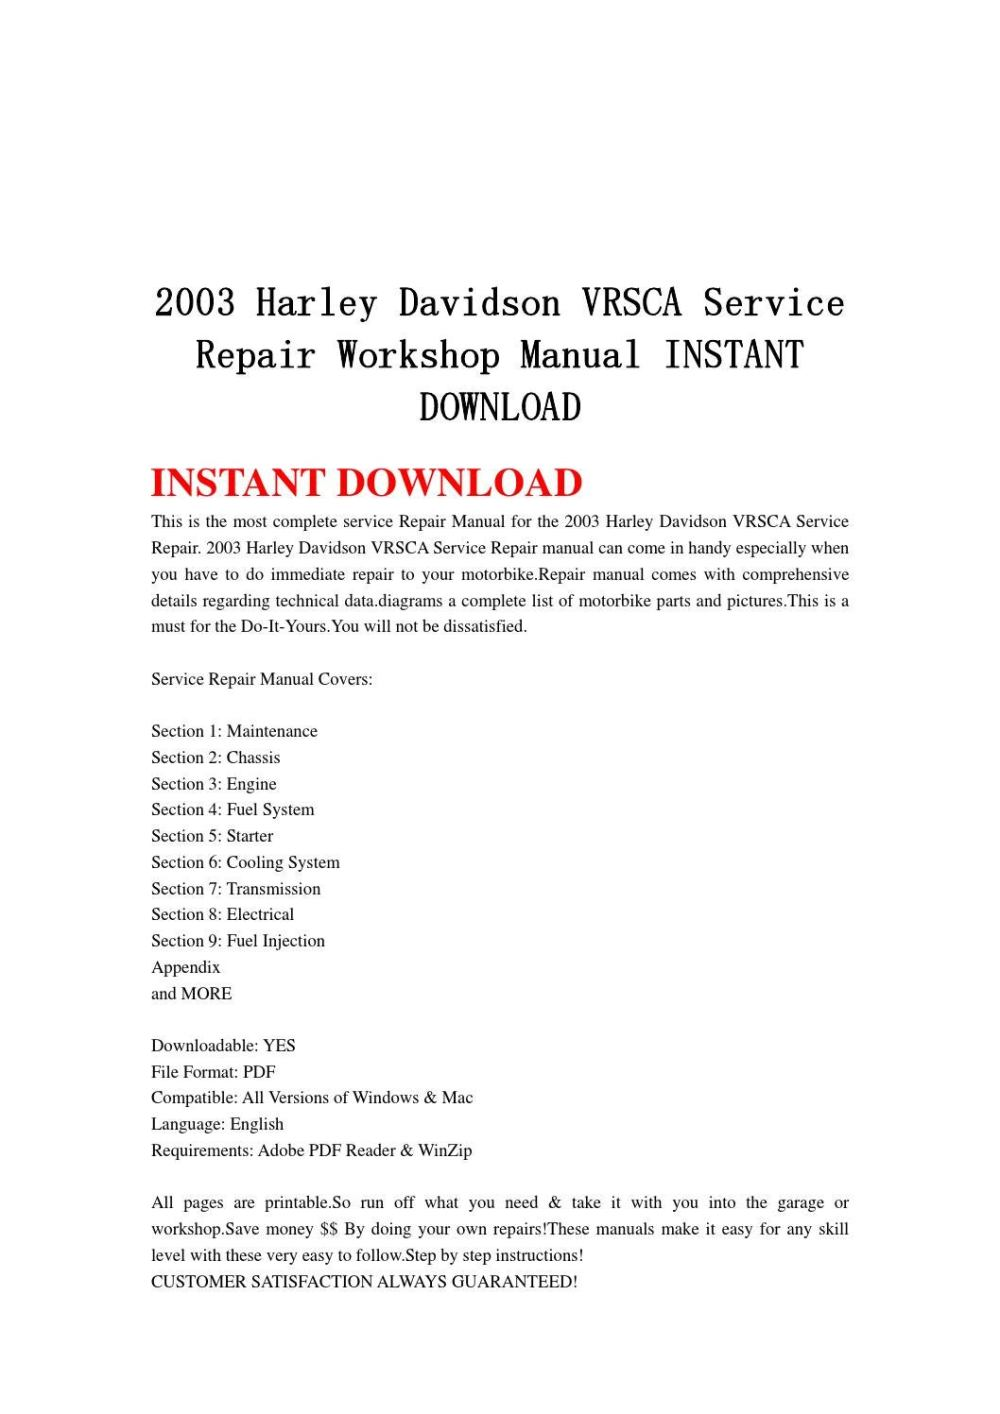 medium resolution of 2003 harley davidson vrsca service repair workshop manual instant download by hytggse issuu